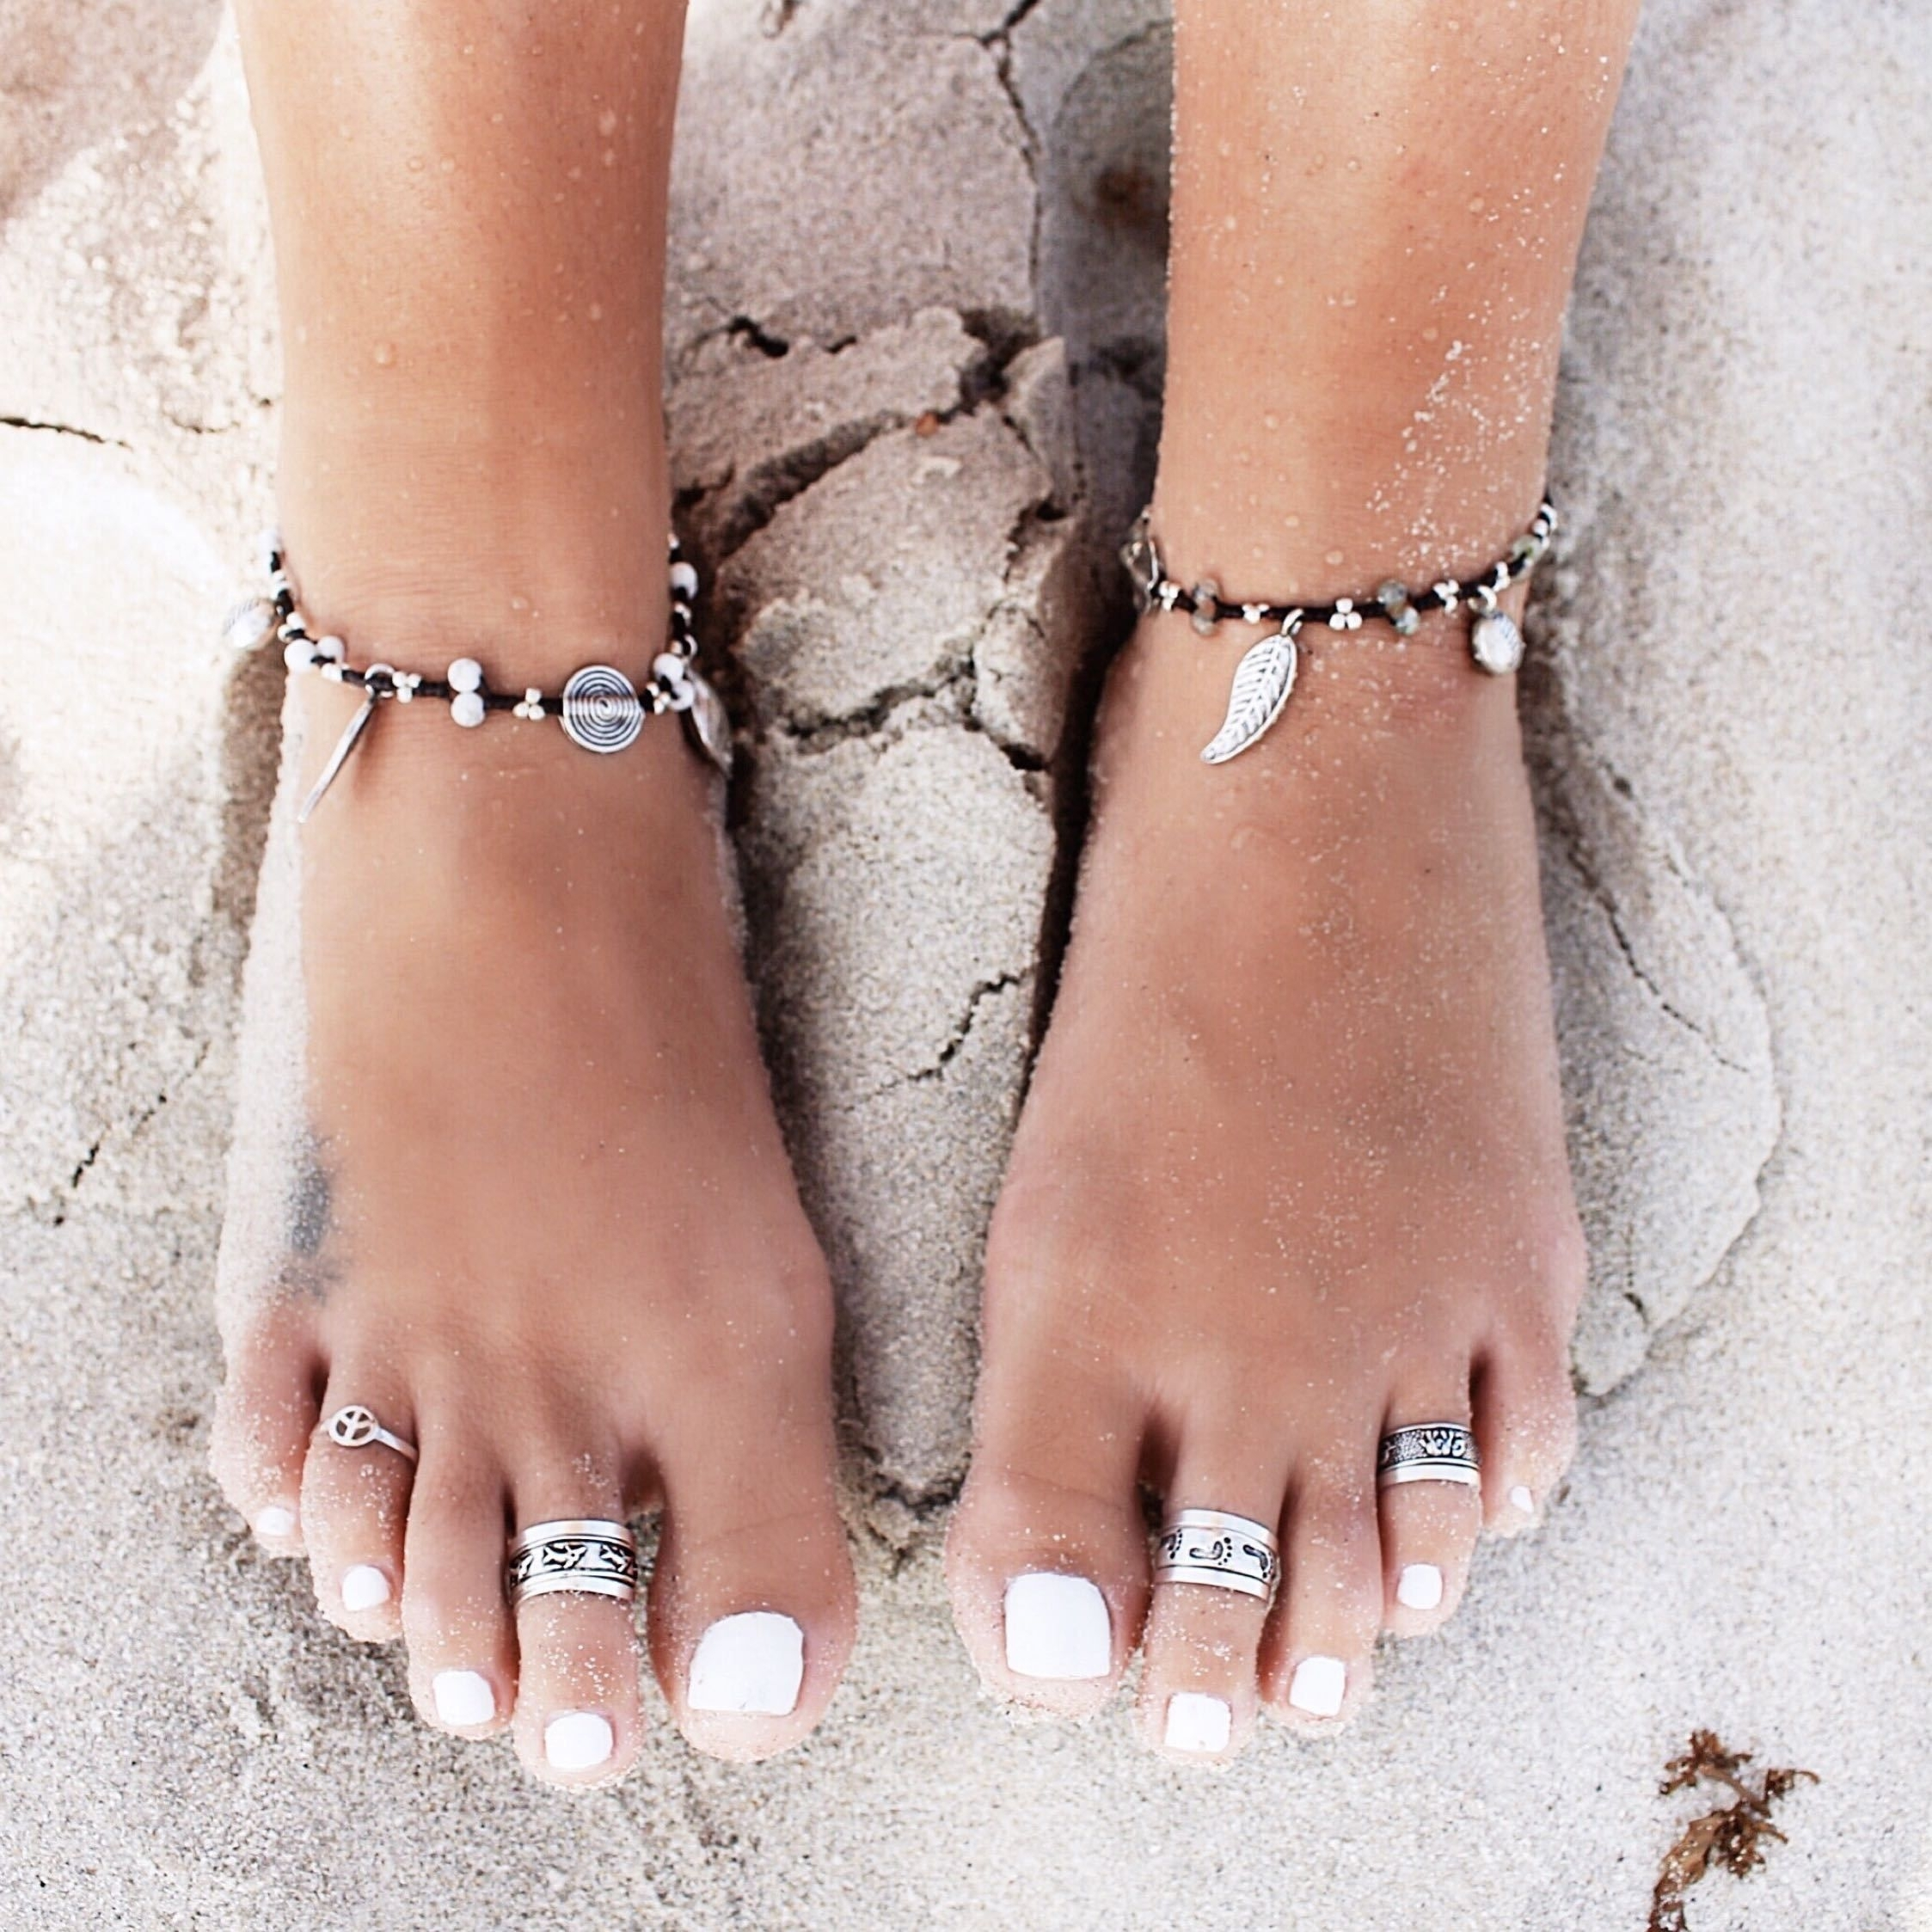 ≫∙∙boho, Feathers + Gypsy Spirit∙∙≪   Nails   Pinterest Regarding Recent Vintage Toe Rings (View 11 of 15)